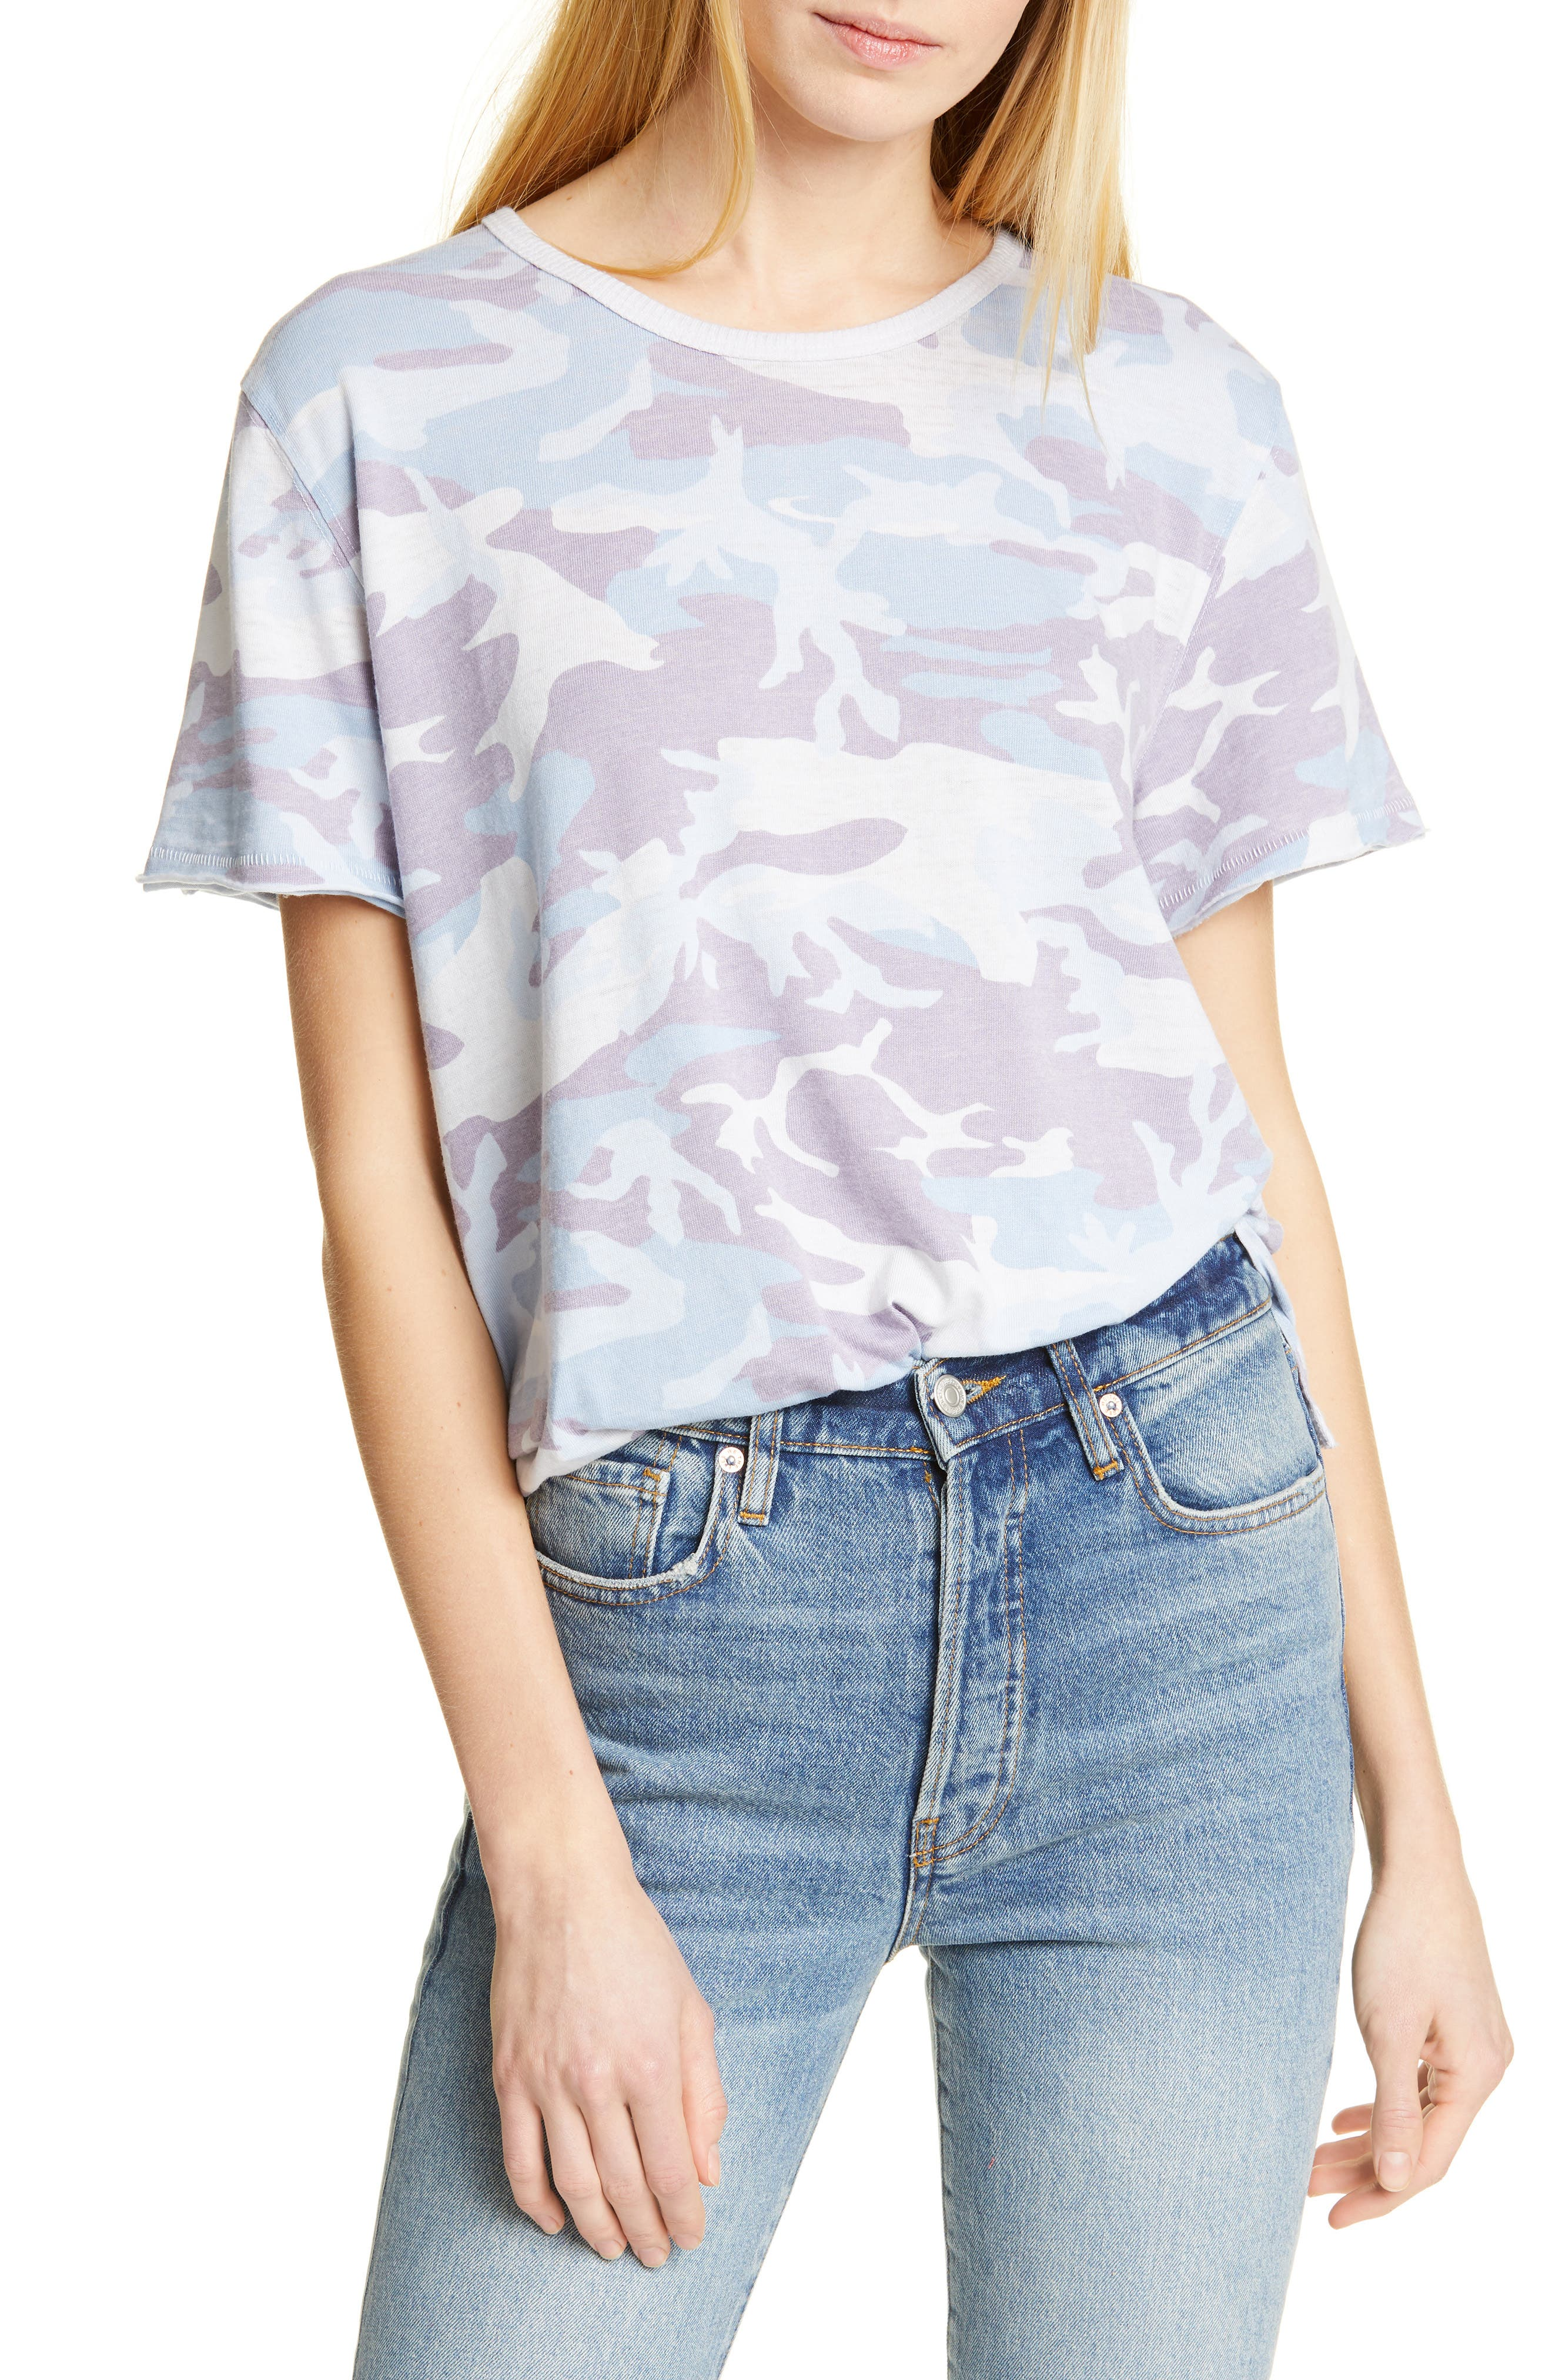 a9a4ac7d6 Women's Free People Clothing | Nordstrom